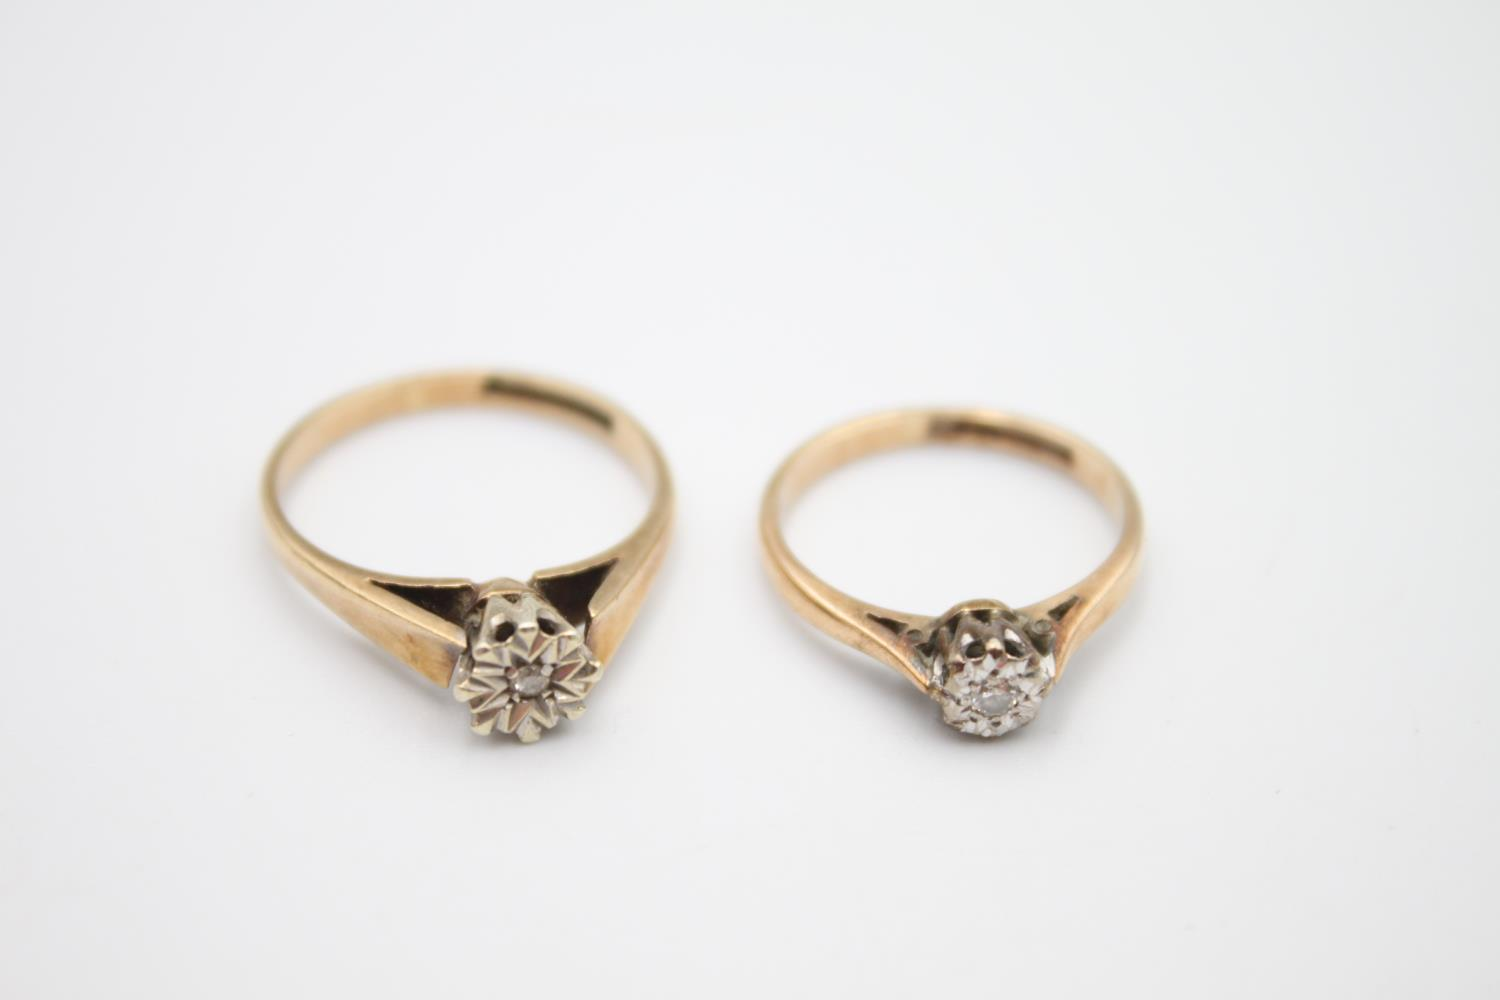 2 x 9ct gold diamond solitaire rings 3.6g Size M on left & H on right